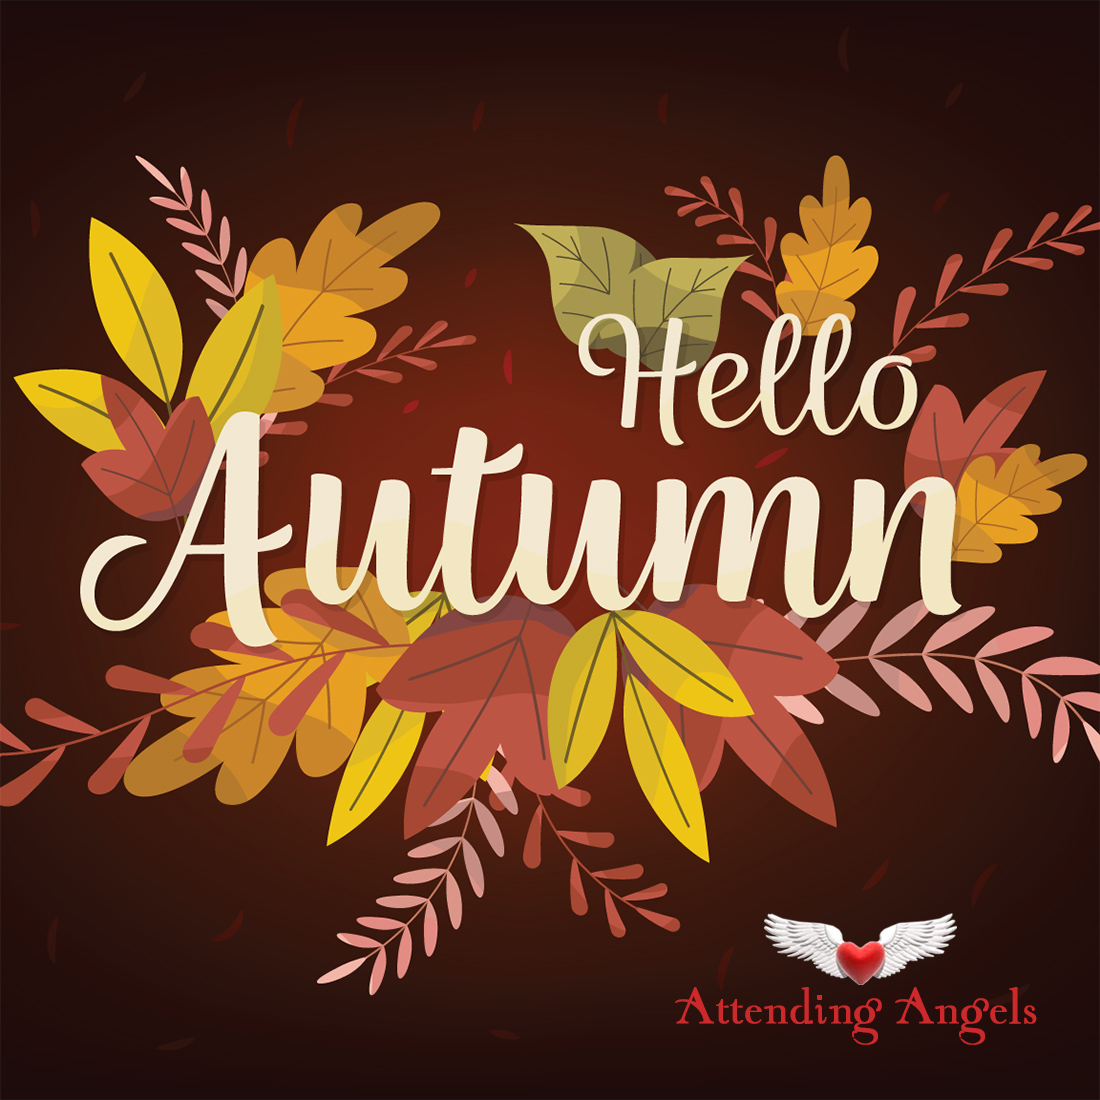 Are you ready for fall? 🍂 #Fall2020  #STL #StLouis #attendingangels #stcharlesmo #OfallonMo #stclairmo #homecare #franklincounty #mentalhealth #seniorservices #homecareprovider #veteranservices #personalcare #inhomecare https://t.co/4BdRfye7Q3